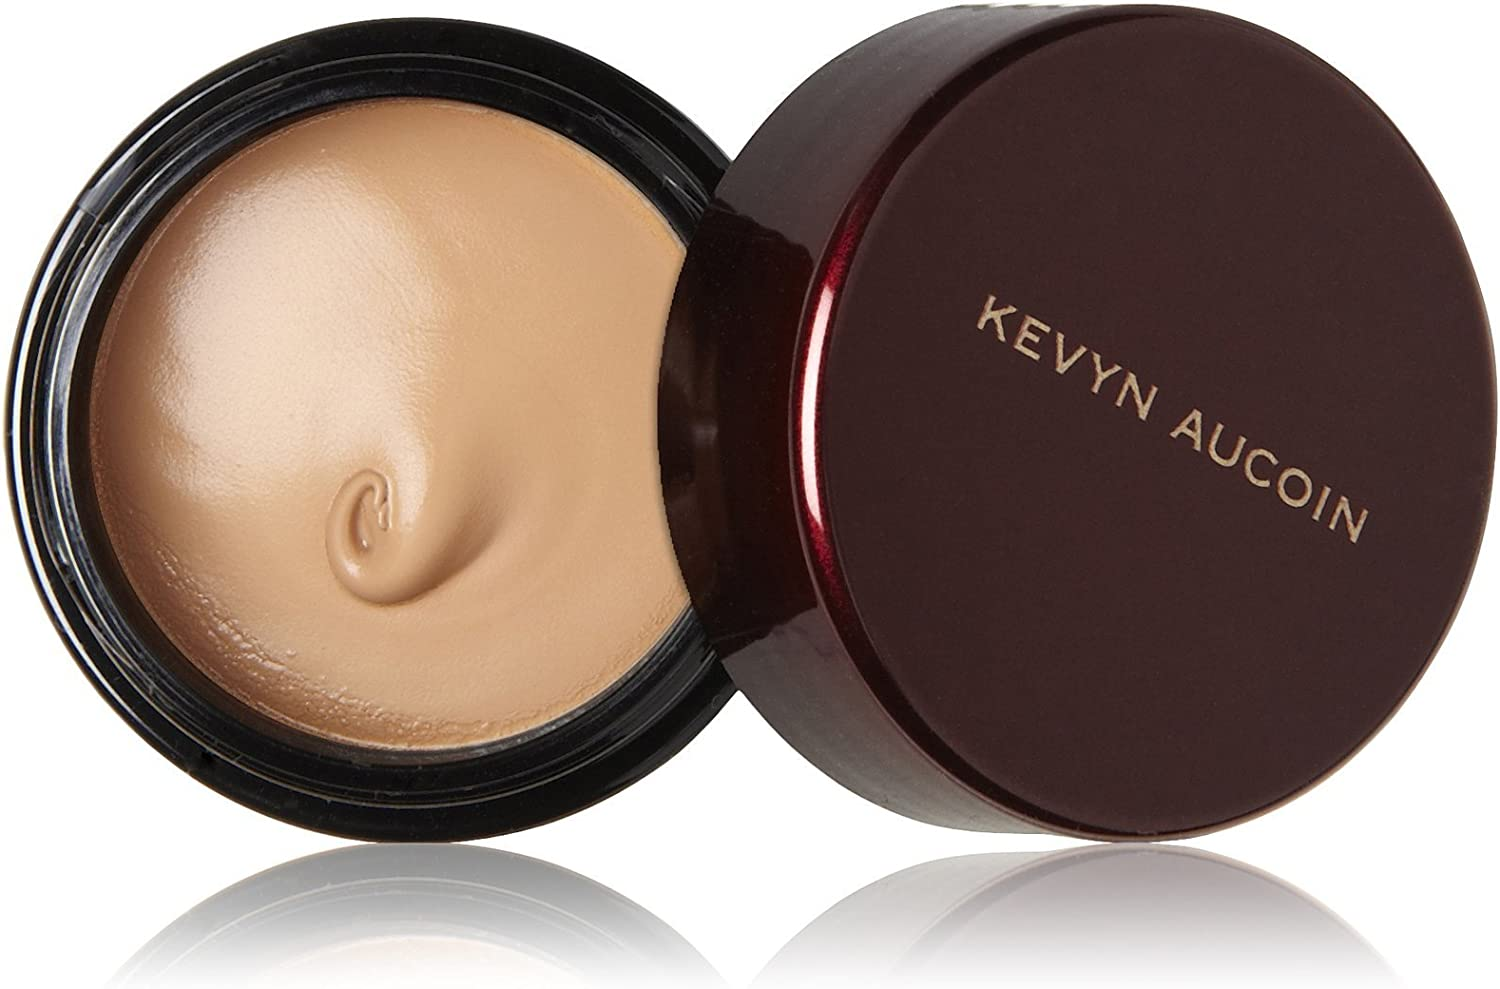 Kevyn Aucoin Sensual Skin Enhancer Foundation